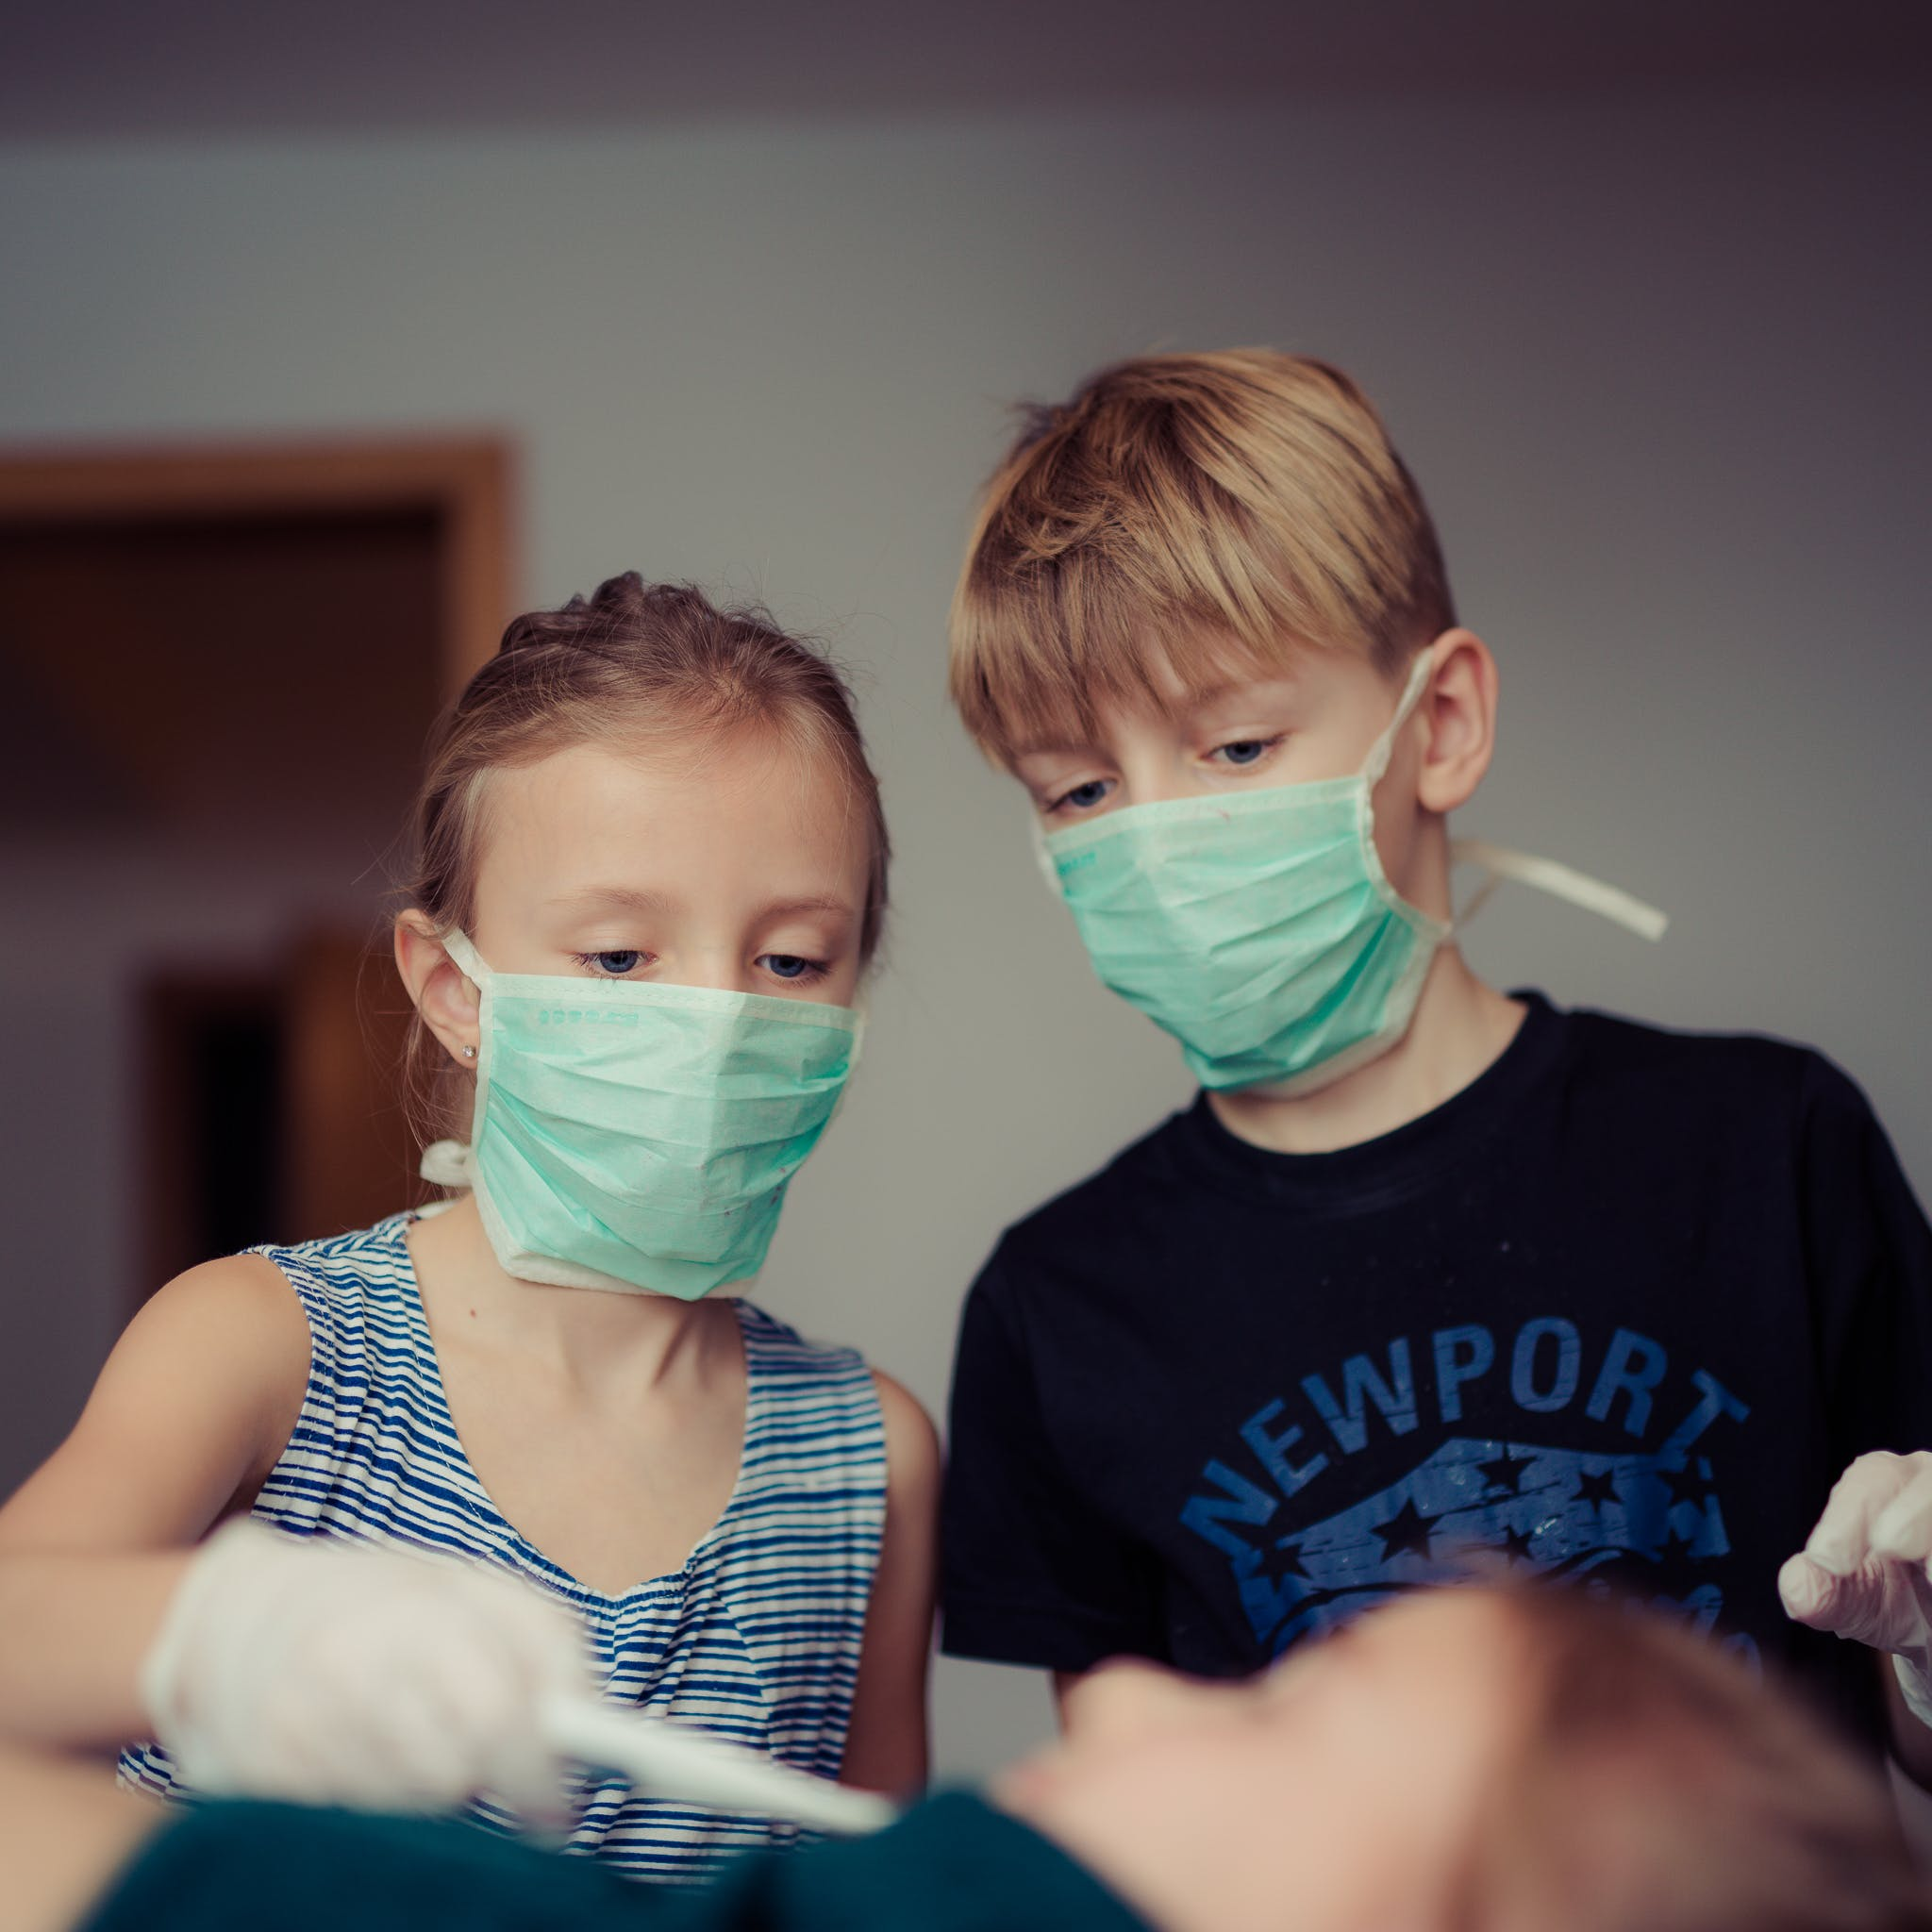 Two Children Wearing Surgical Masks